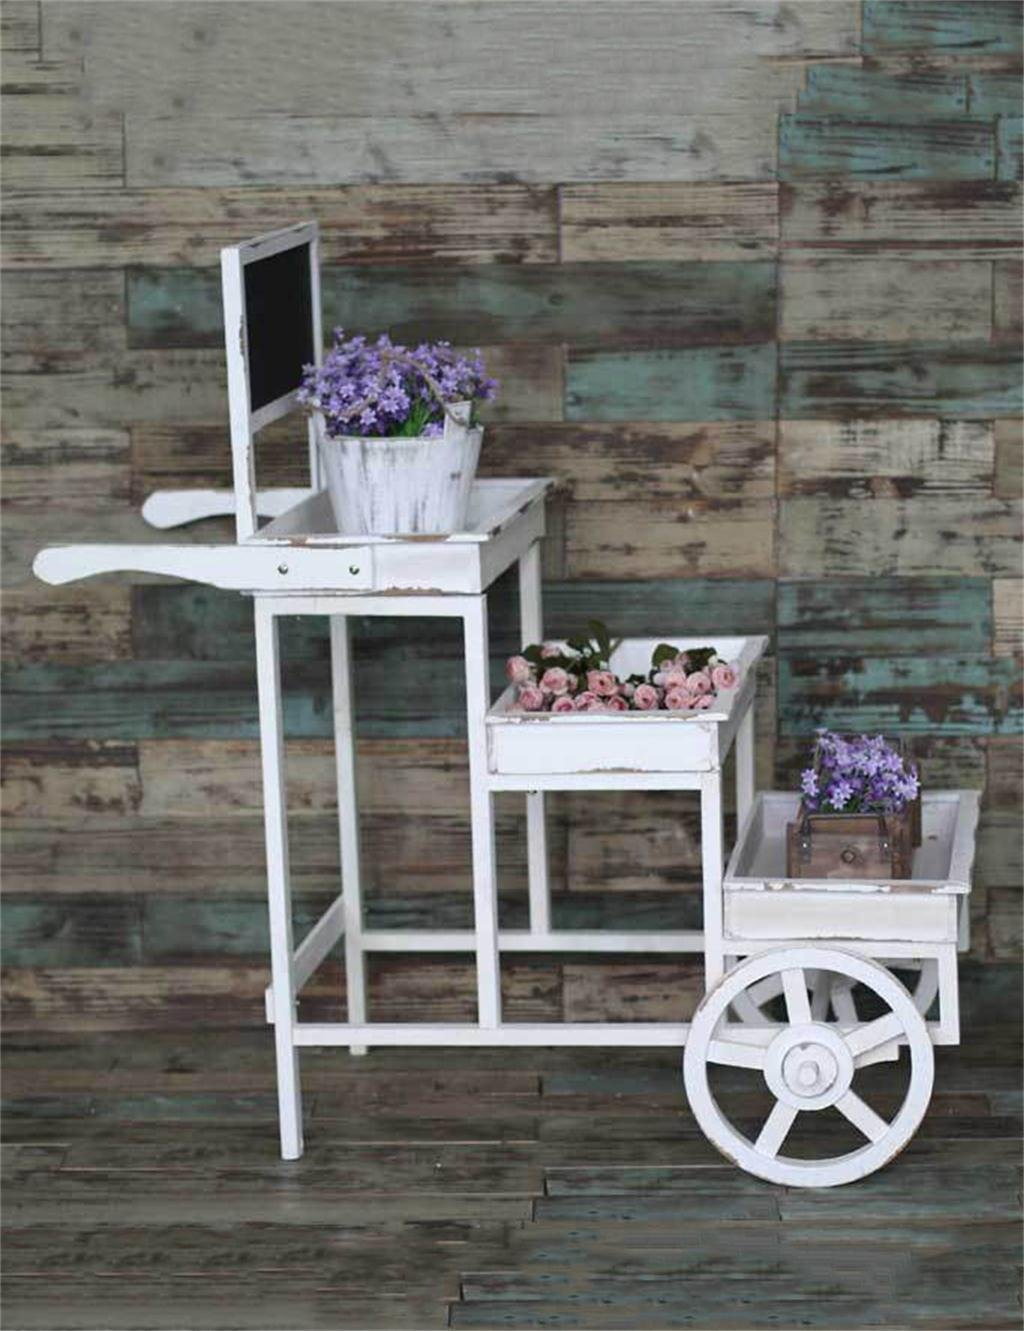 retro dreistufige massivholz trolley blume topf regal montage garten pflanze topf halter blume. Black Bedroom Furniture Sets. Home Design Ideas